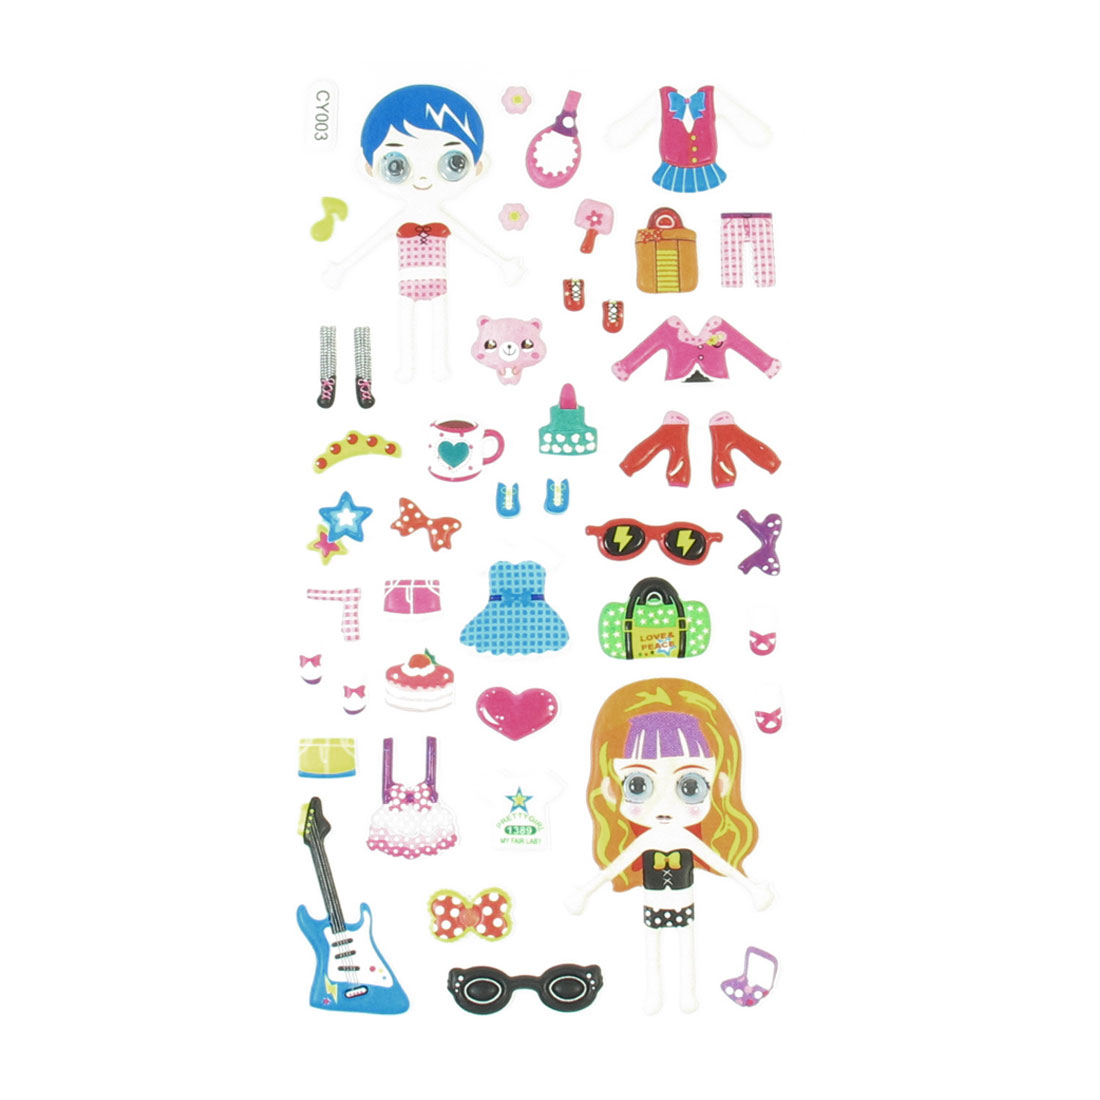 Wobble Eyes Boy Girl Dolls Dress Up DIY Craft Puffy Sticker